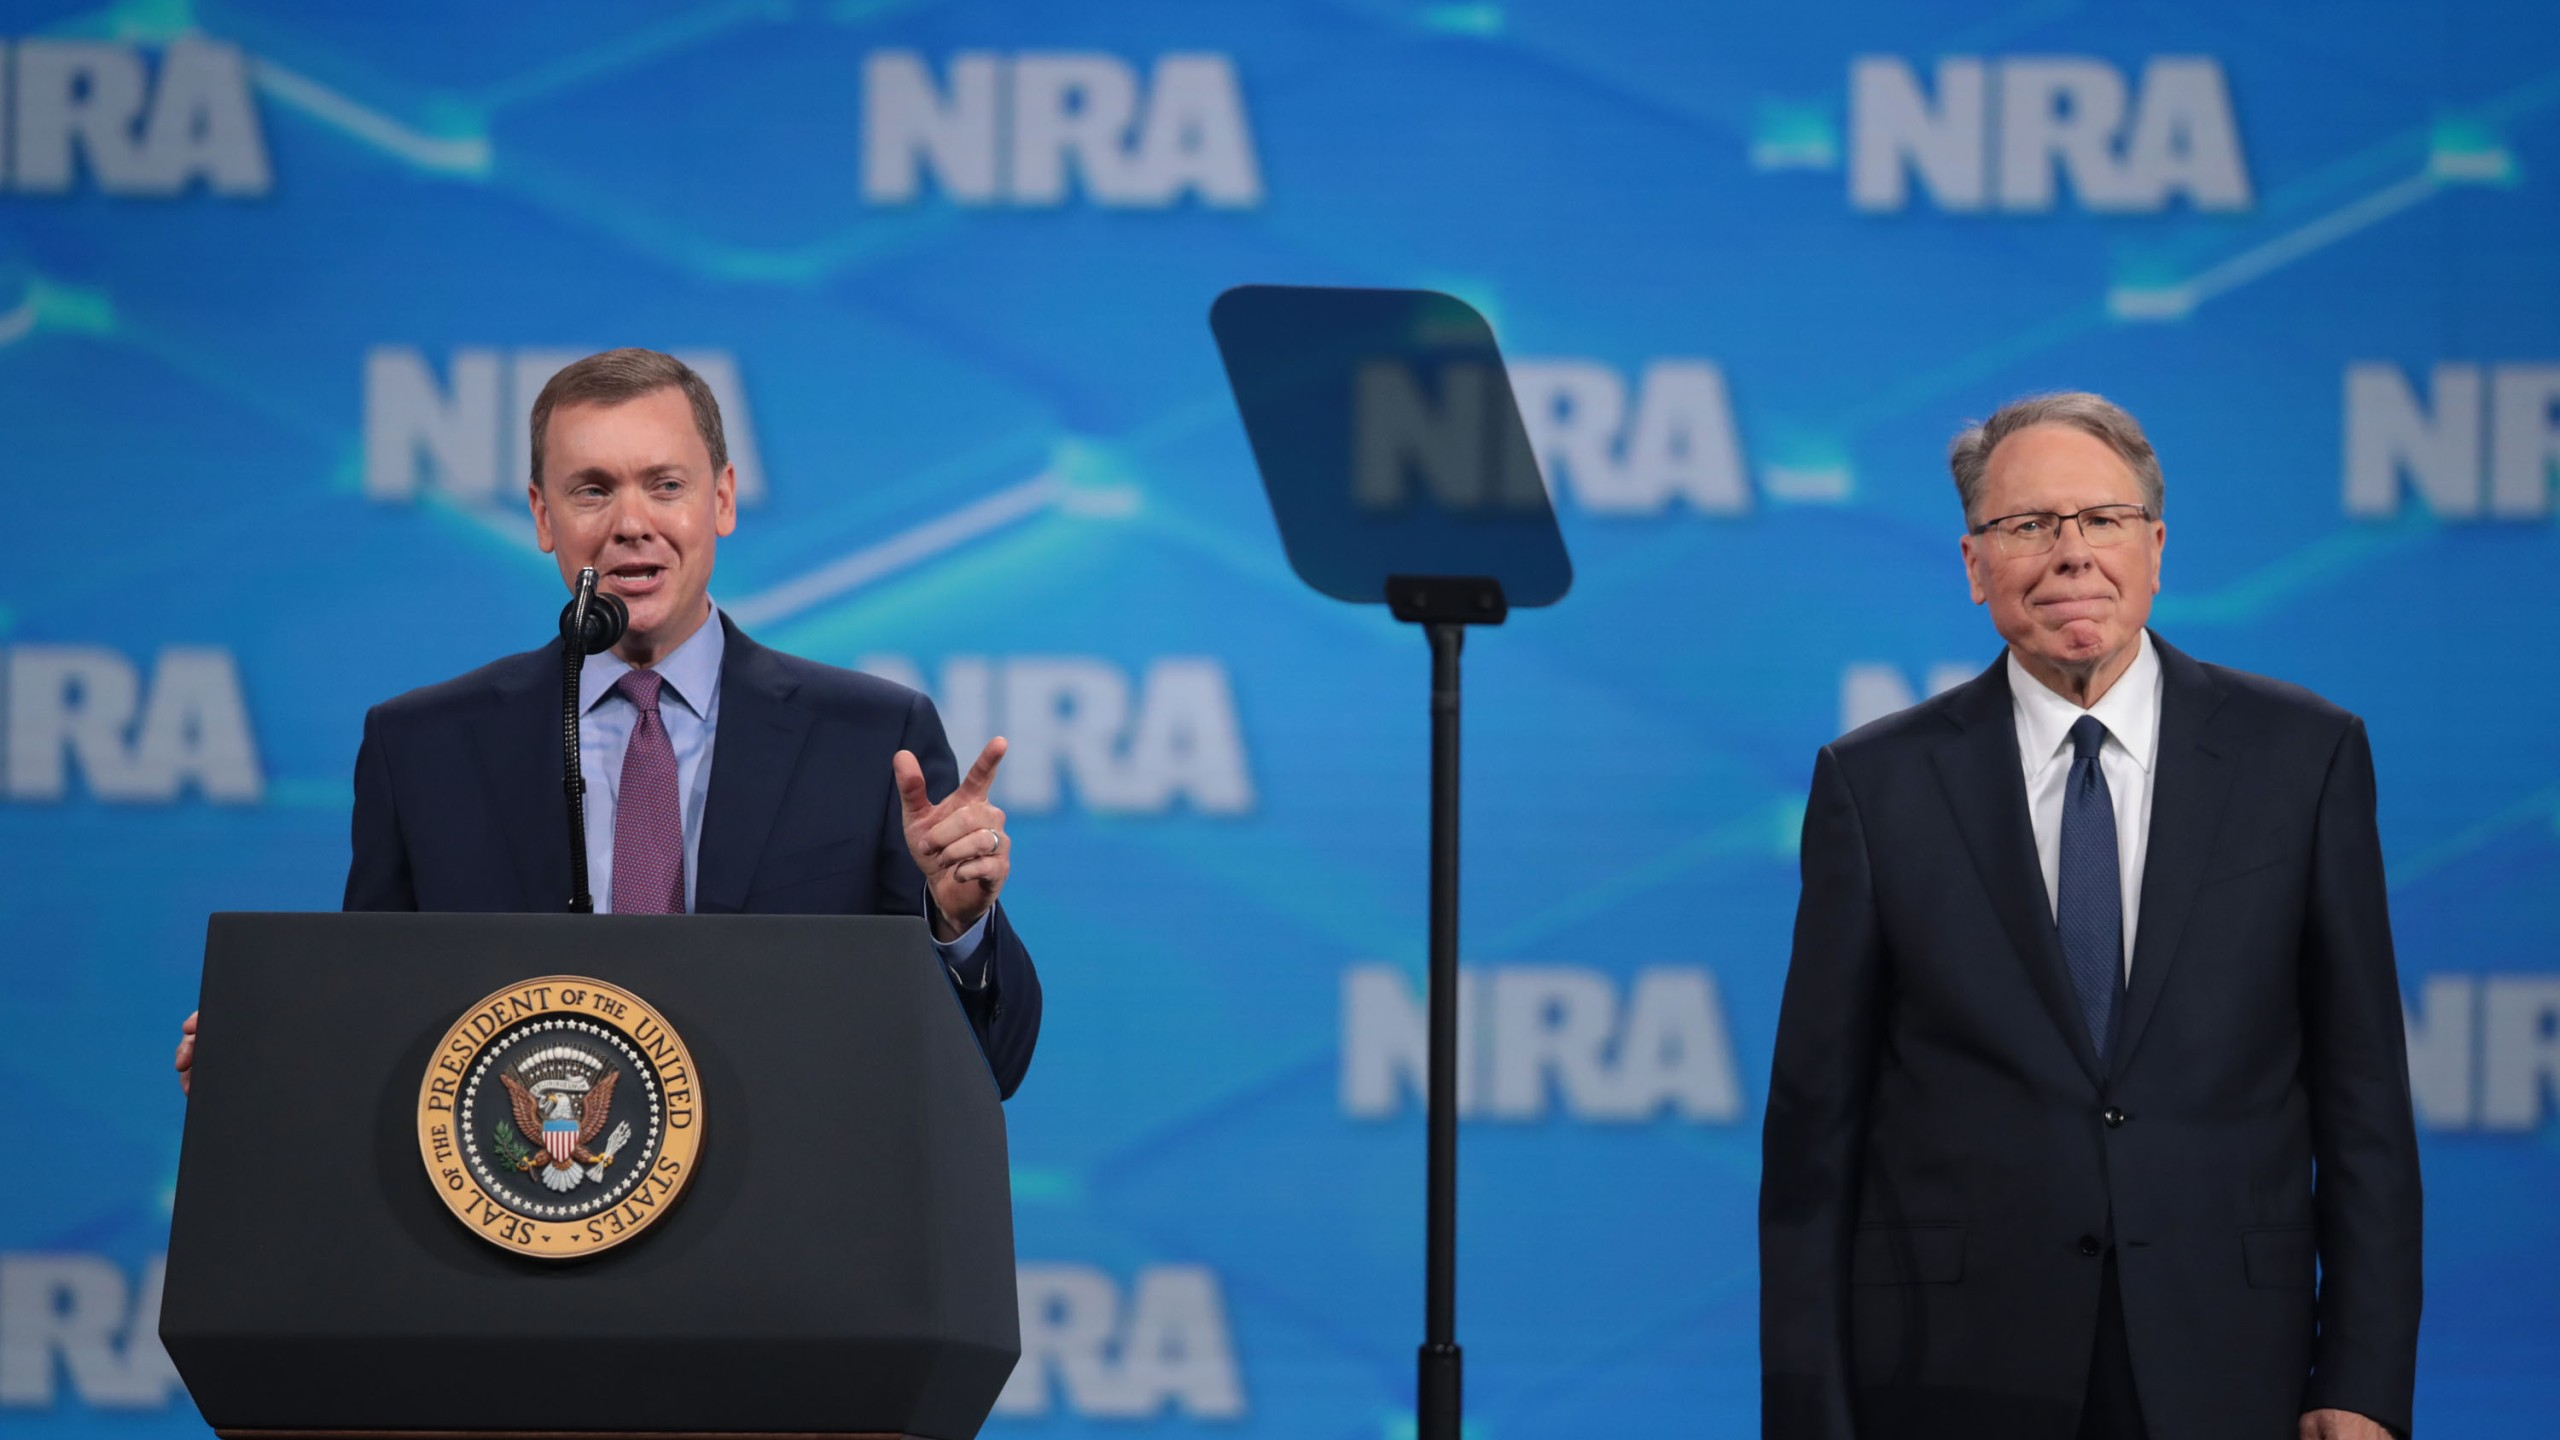 Chris Cox (L), executive director of the NRA-ILA, and Wayne LaPierre, NRA vice president and CEO, speak to guests at the NRA-ILA Leadership Forum at the 148th NRA Annual Meetings & Exhibits on April 26, 2019 in Indianapolis, Indiana. (Credit: Scott Olson/Getty Images)